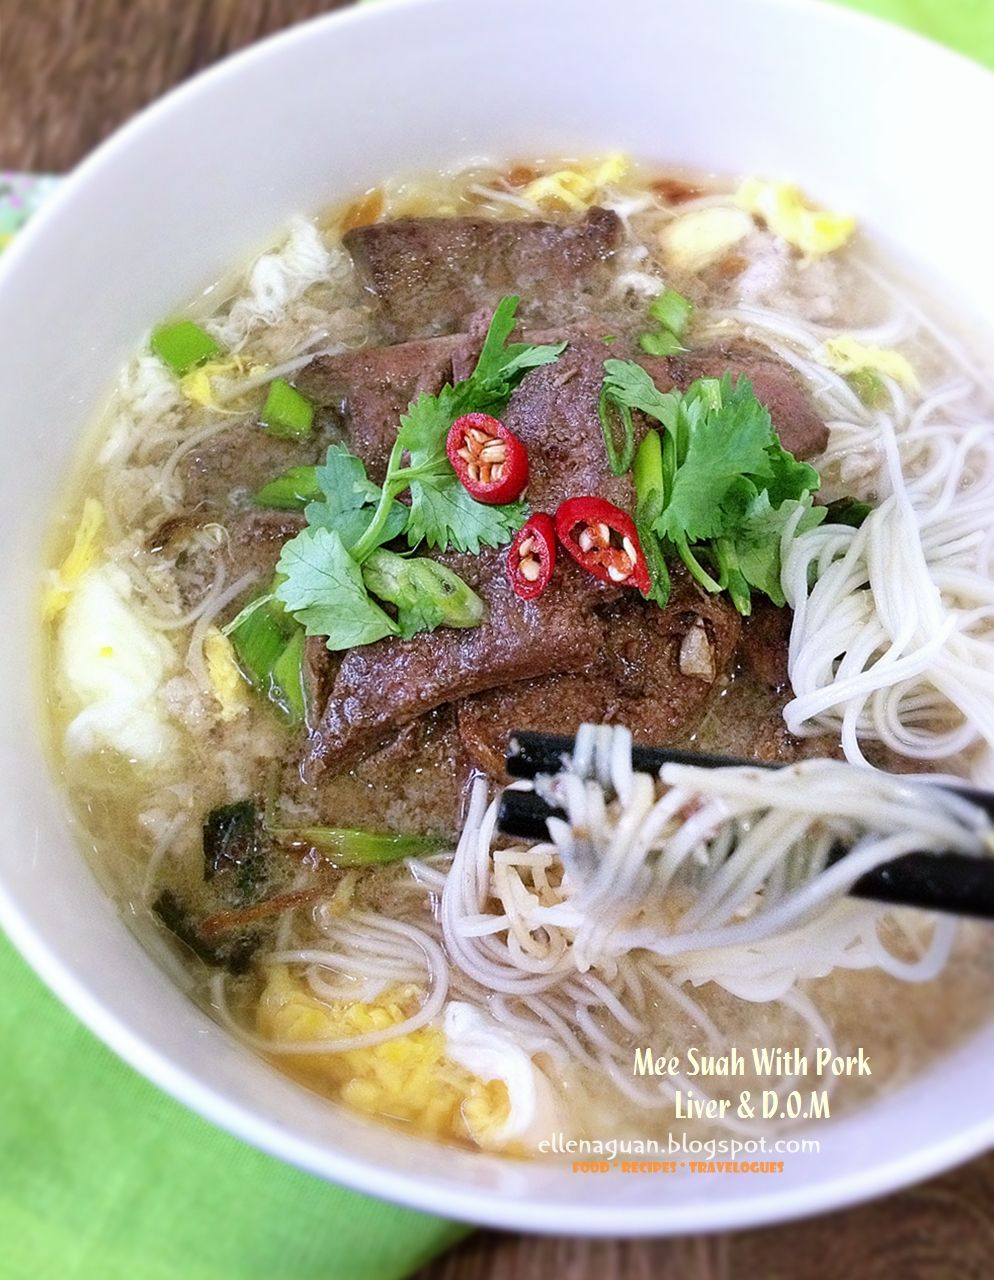 Cuisine paradise singapore food blog recipes reviews and travel food forumfinder Choice Image